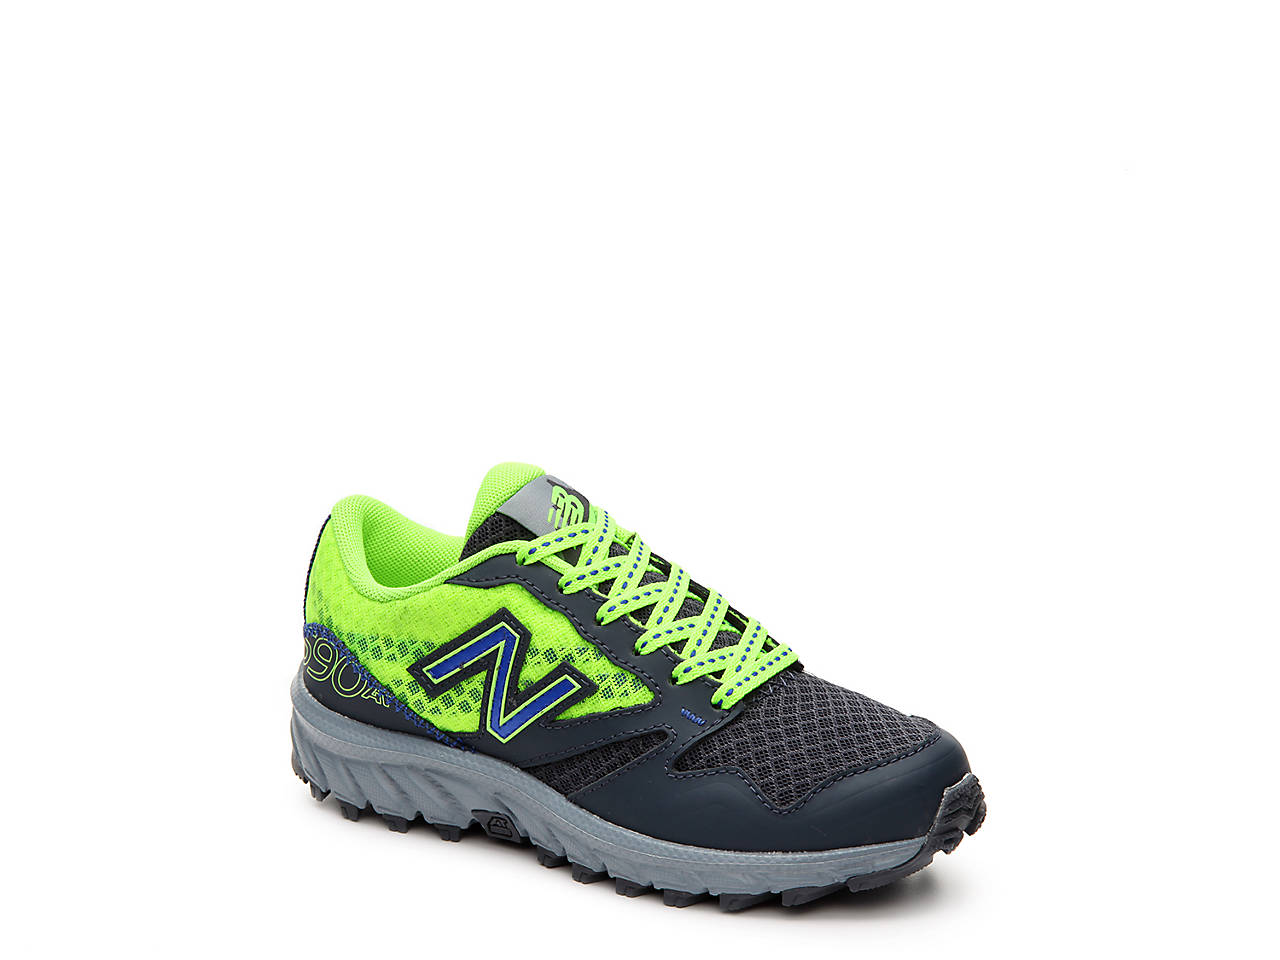 separation shoes 94374 eeda7 ... DSW 54.95 690 AT Toddler Youth Running Shoe ...